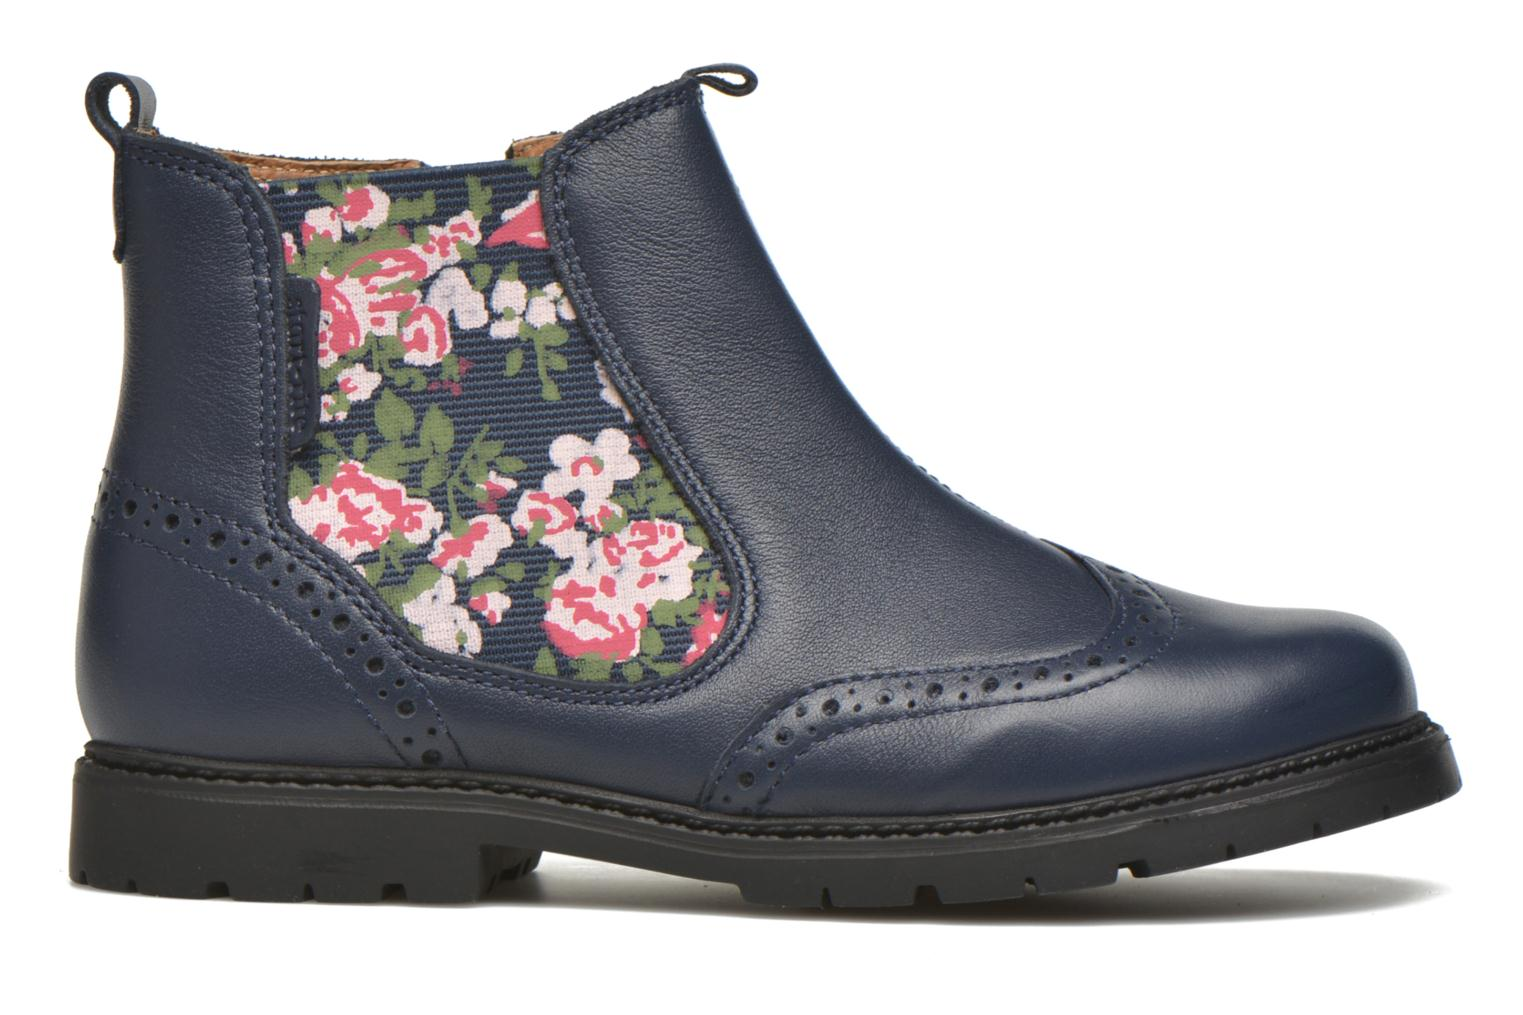 Chelsea Navy leather/Floral